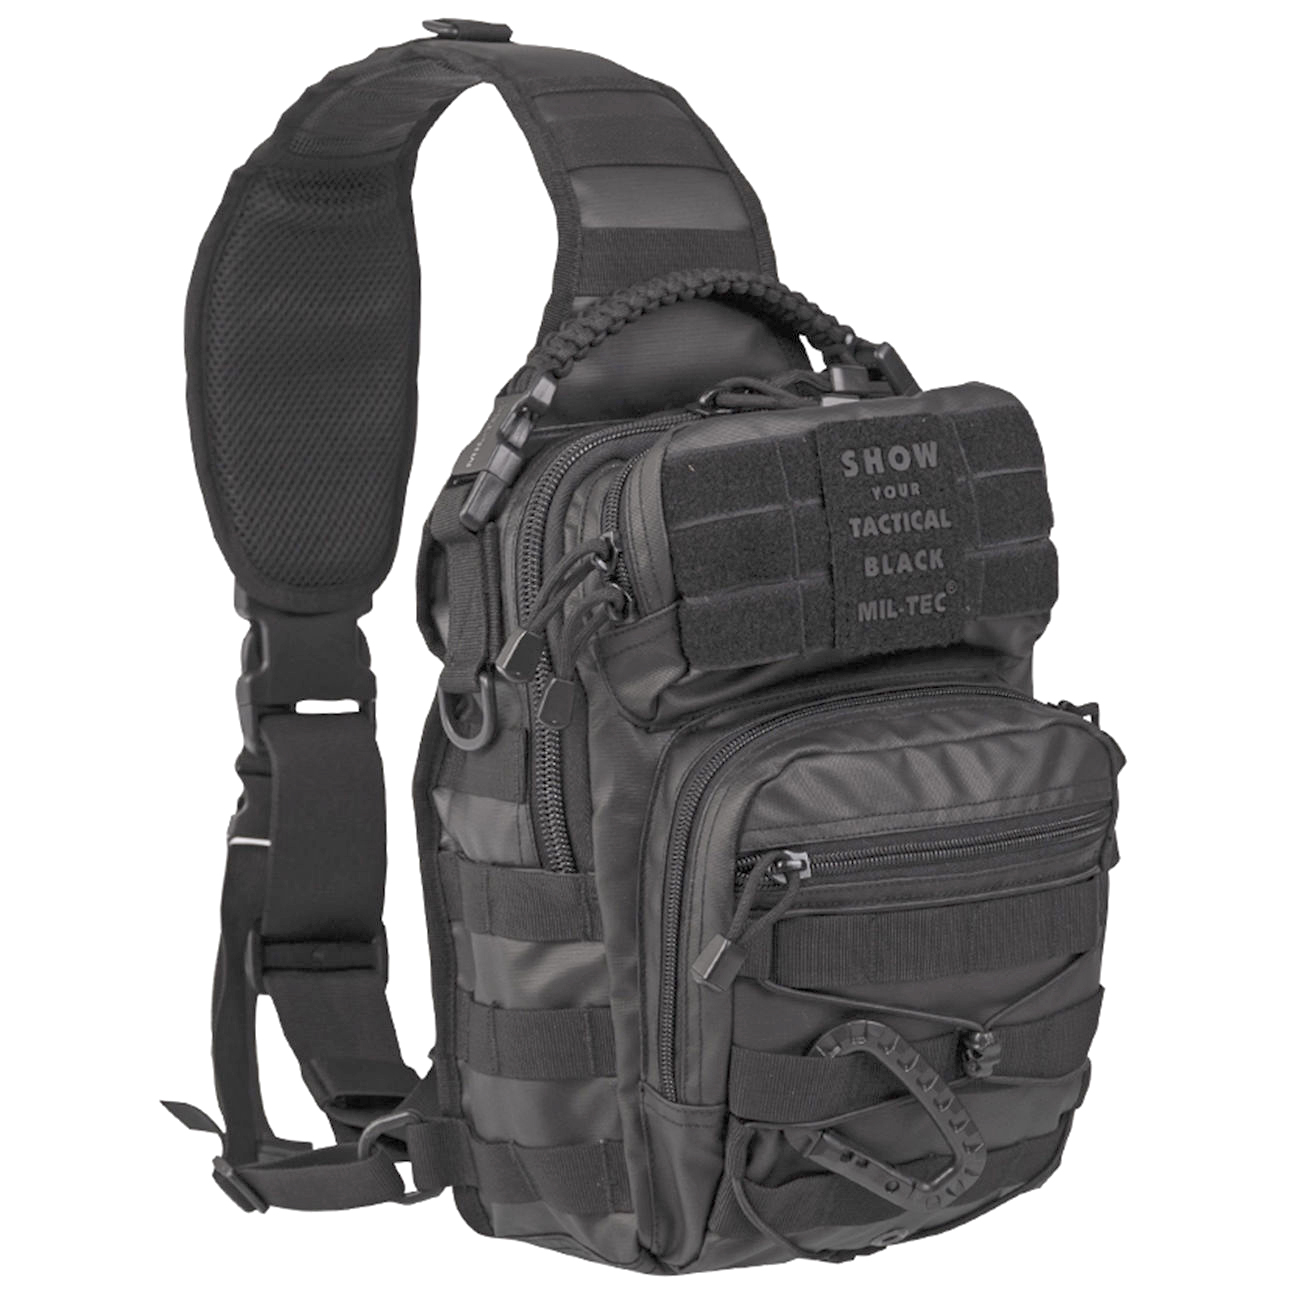 Mil-Tec Rucksack One Strap Assault Pack small 10 Liter tactical black 0